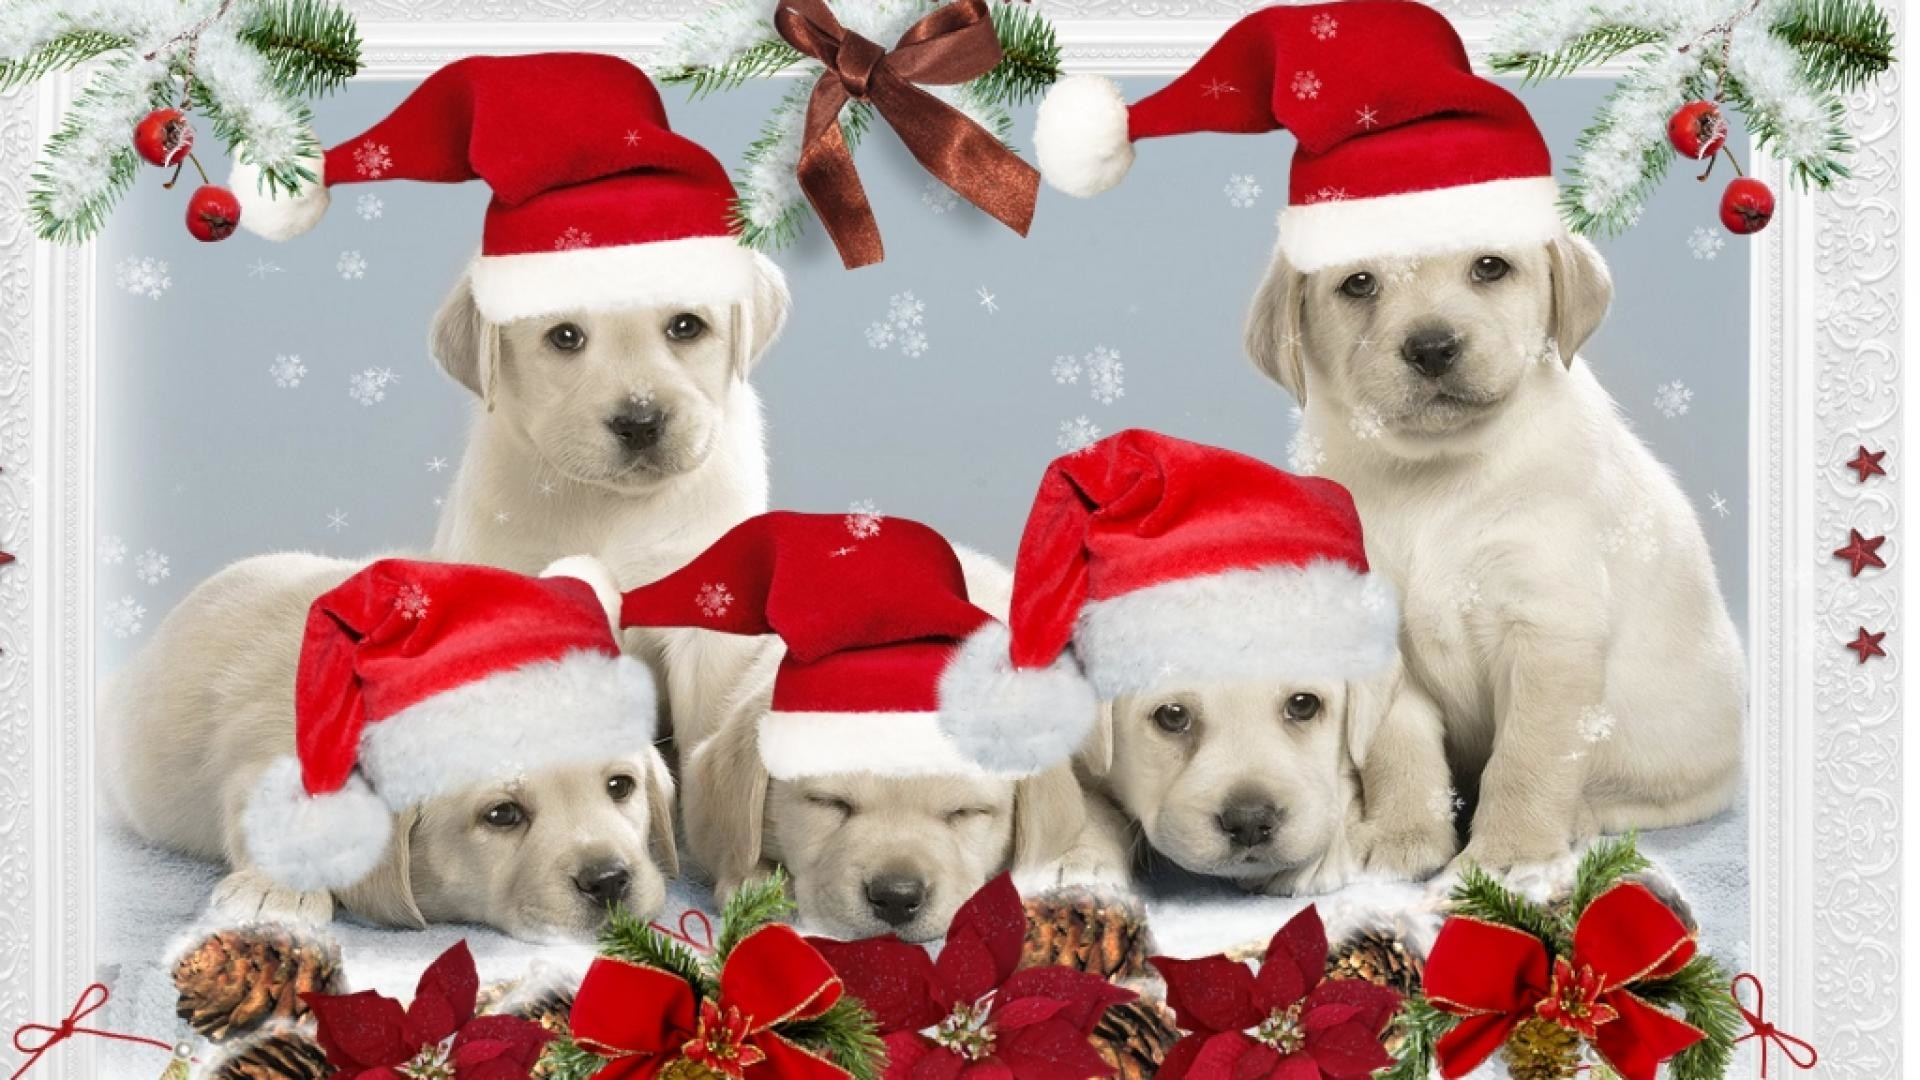 1920x1080 Puppy Christmas Wallpaper For Desktop : Christmas dog computer wallpaper  picture wallpapersafari